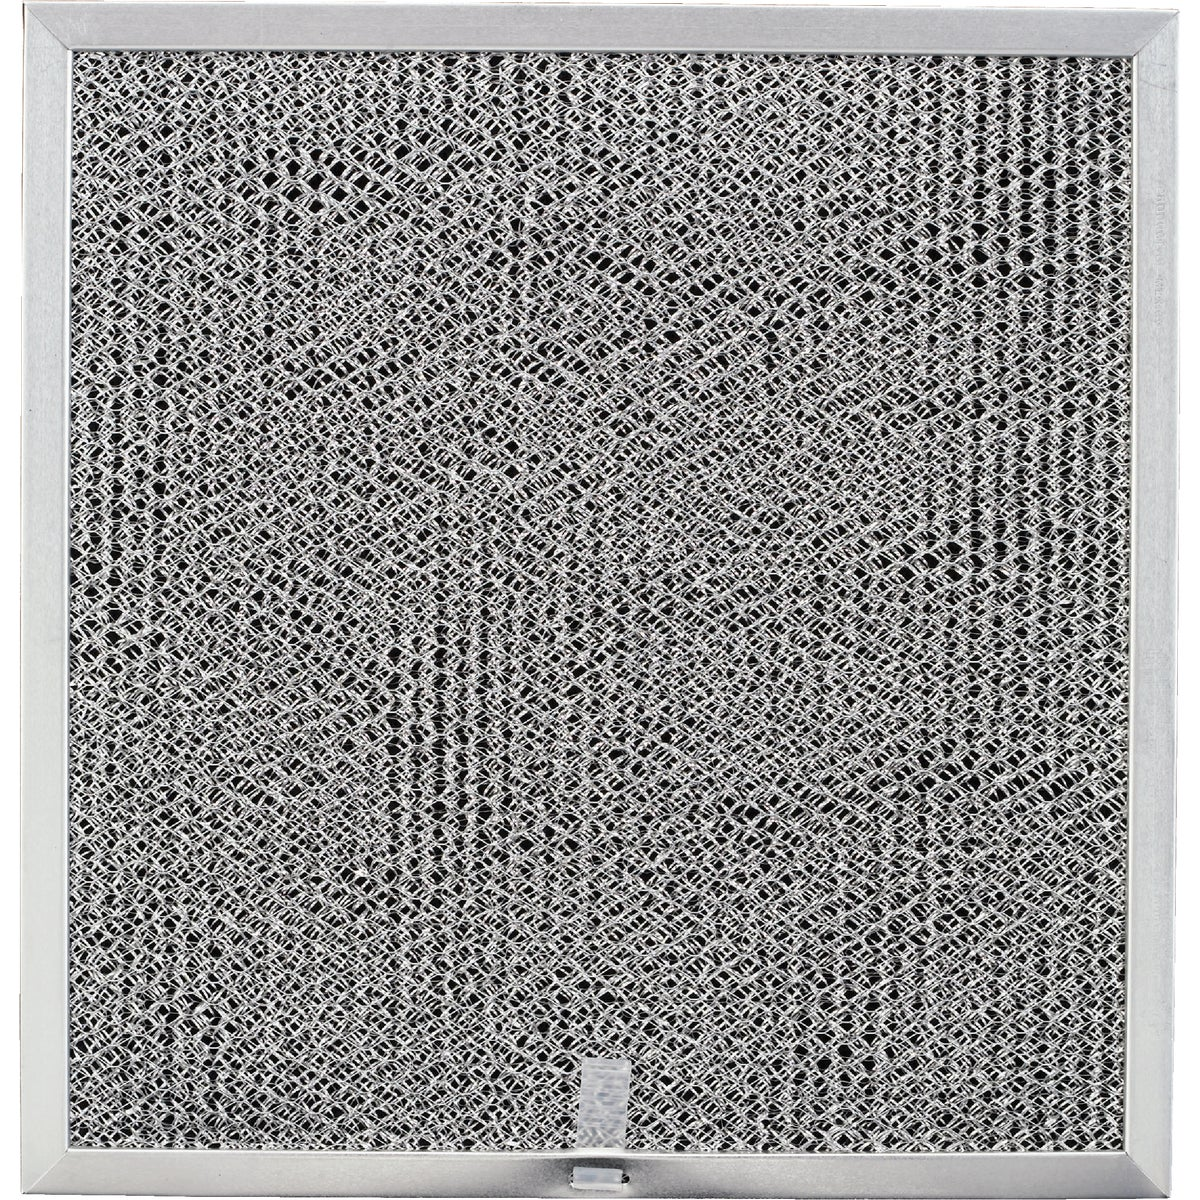 QT NON-DUCTED FILTER